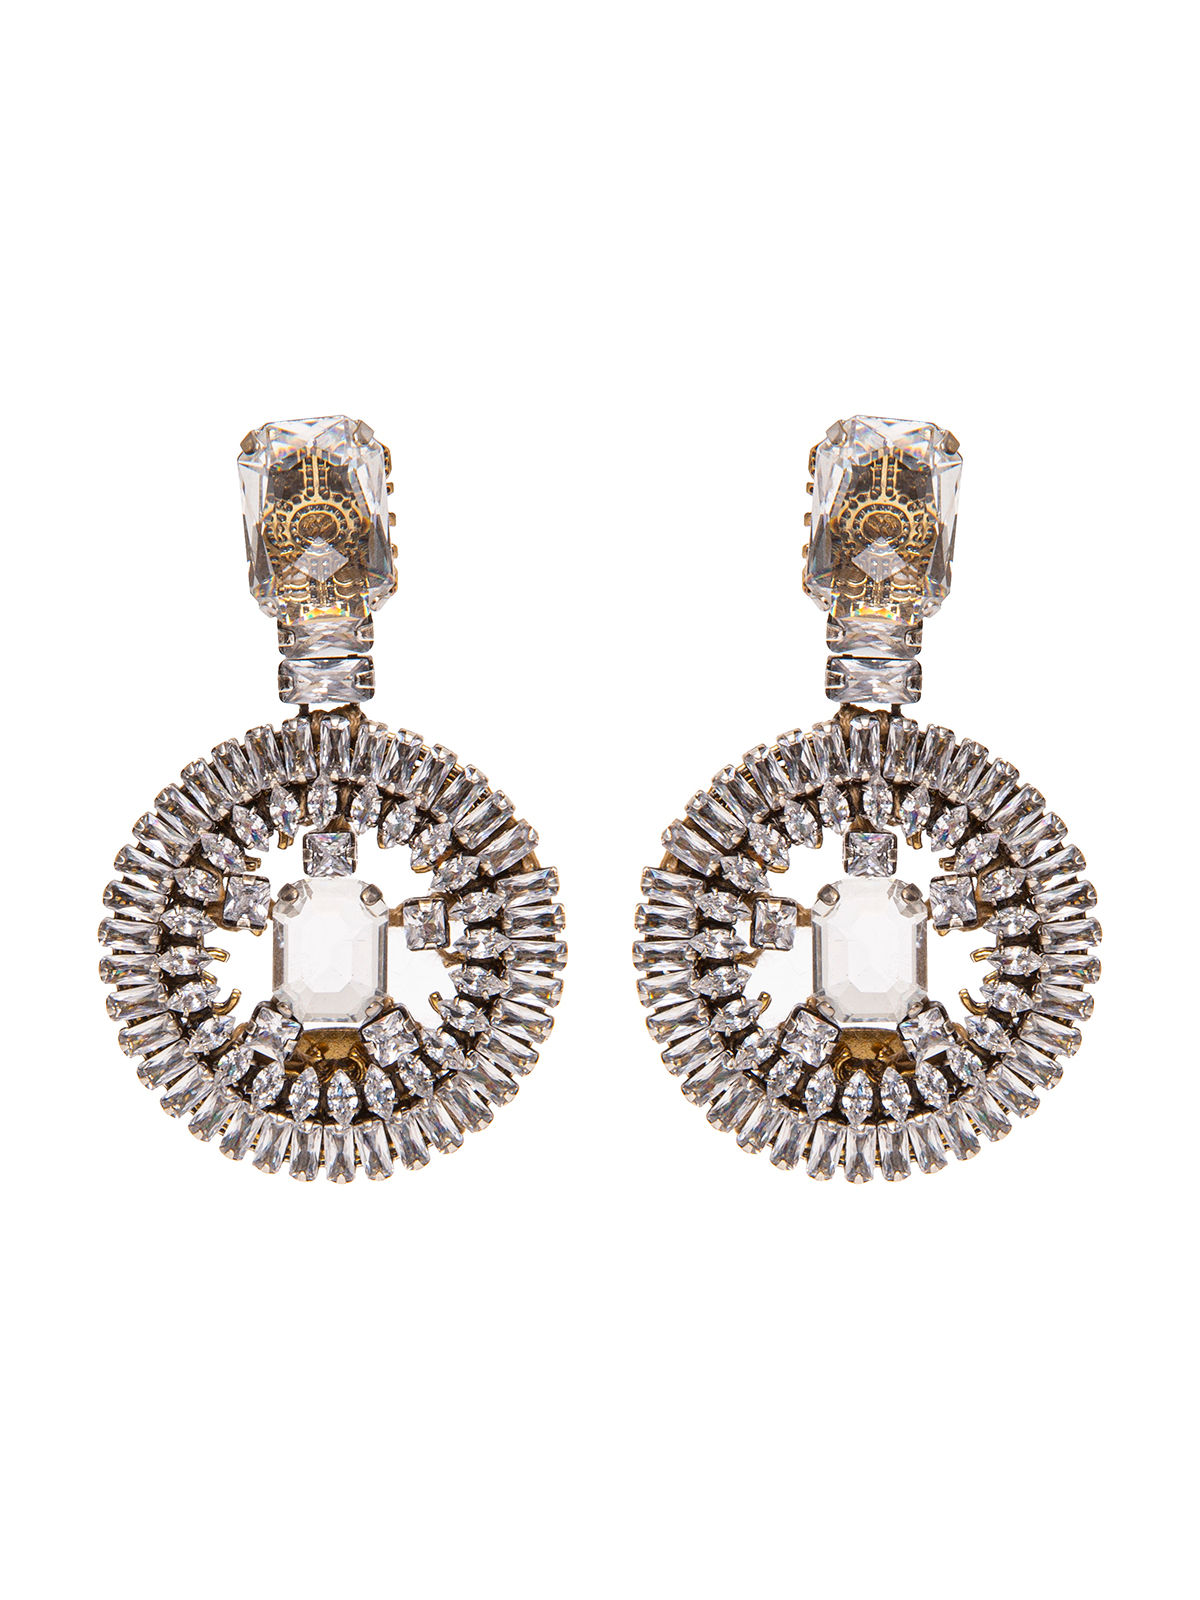 Stone earrings with round  crystal pendant